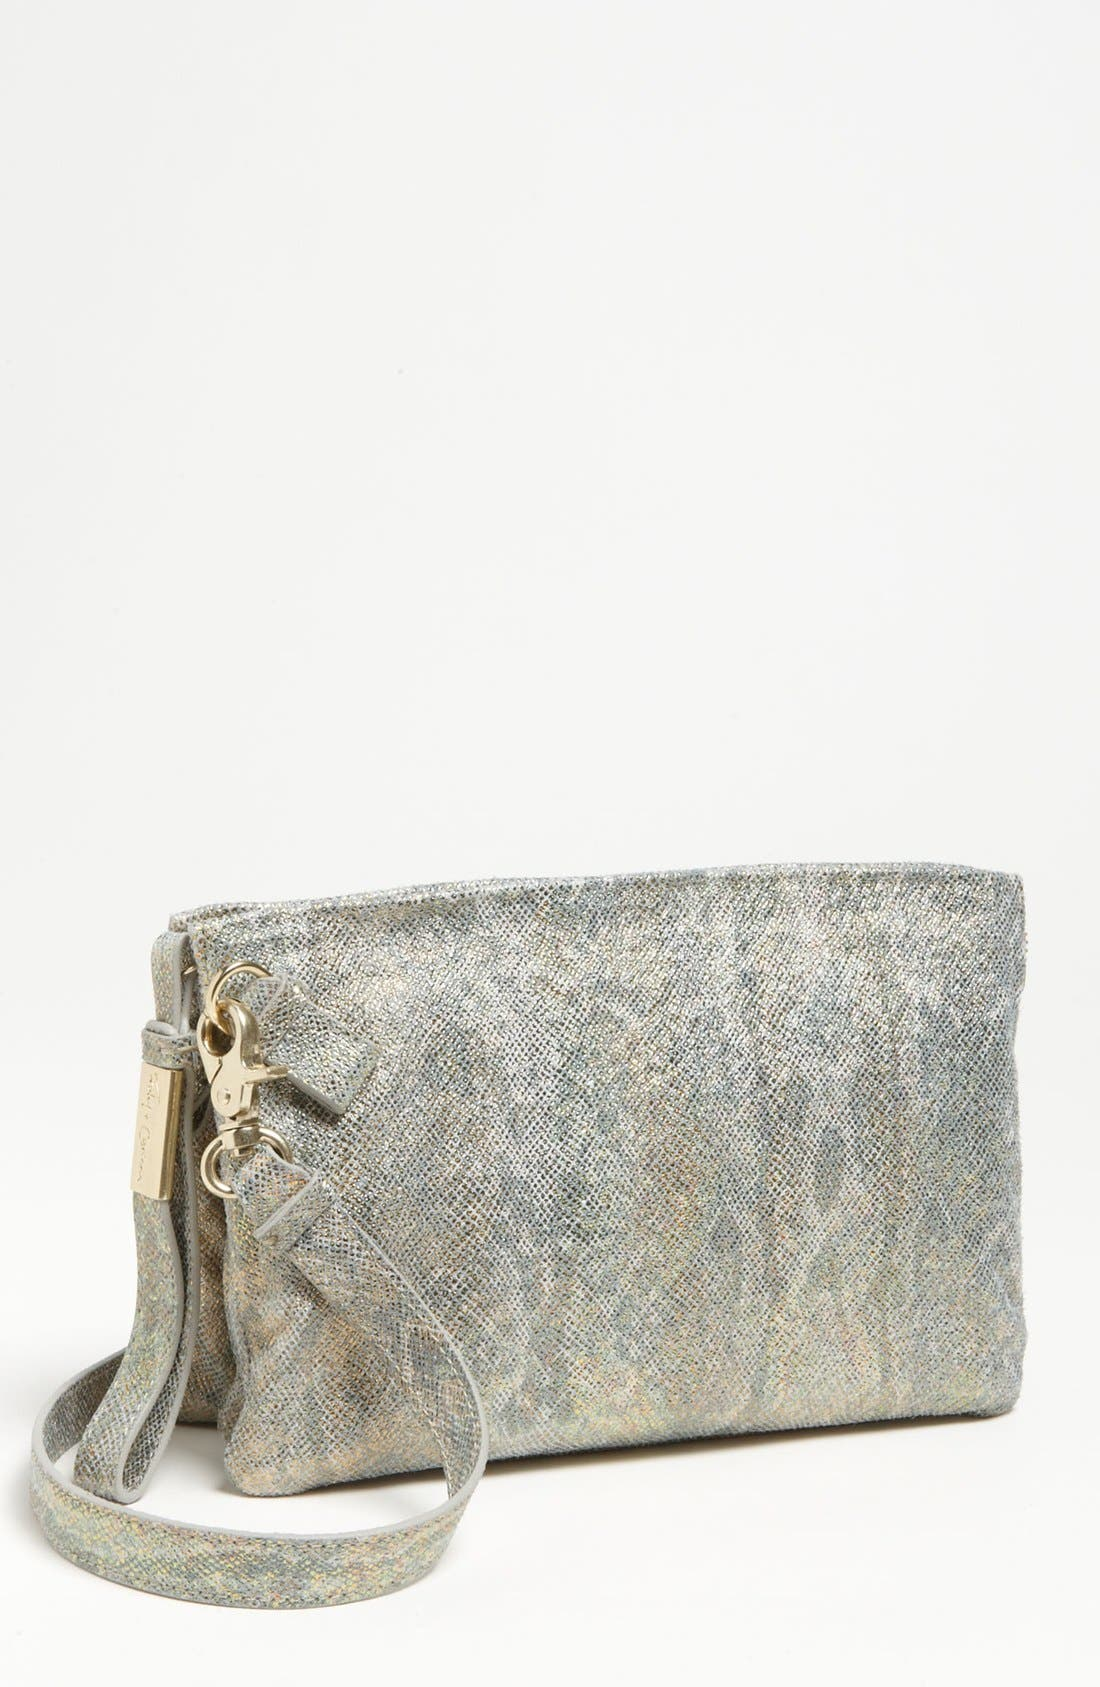 Main Image - Foley + Corinna 'Cache Day' Leather Crossbody Clutch